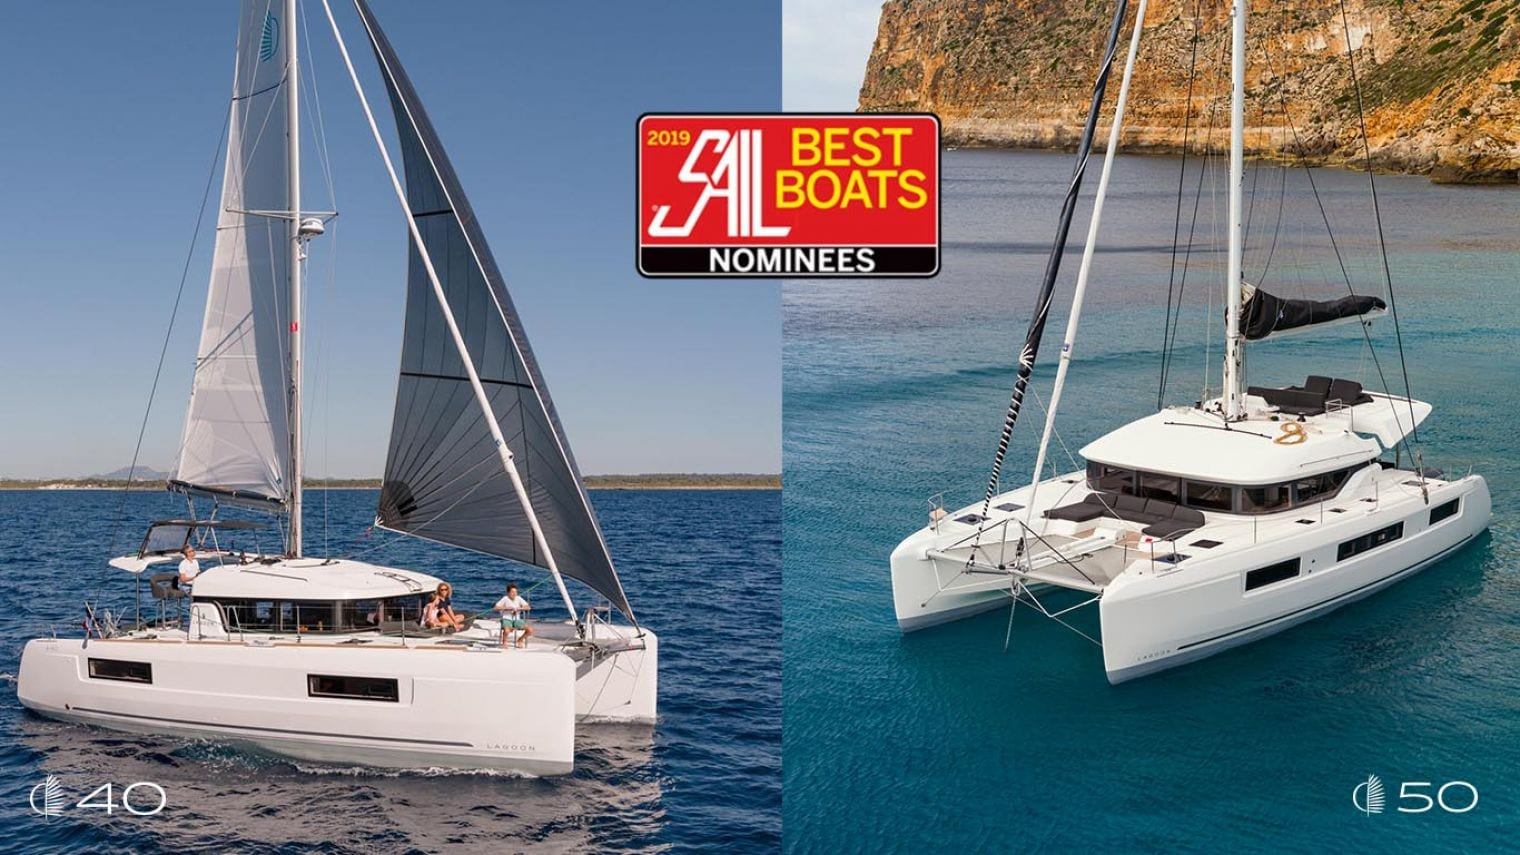 Lagoon 40 and 50 Nominated for SAIL Magazine's 'Best Boats 2019' Award